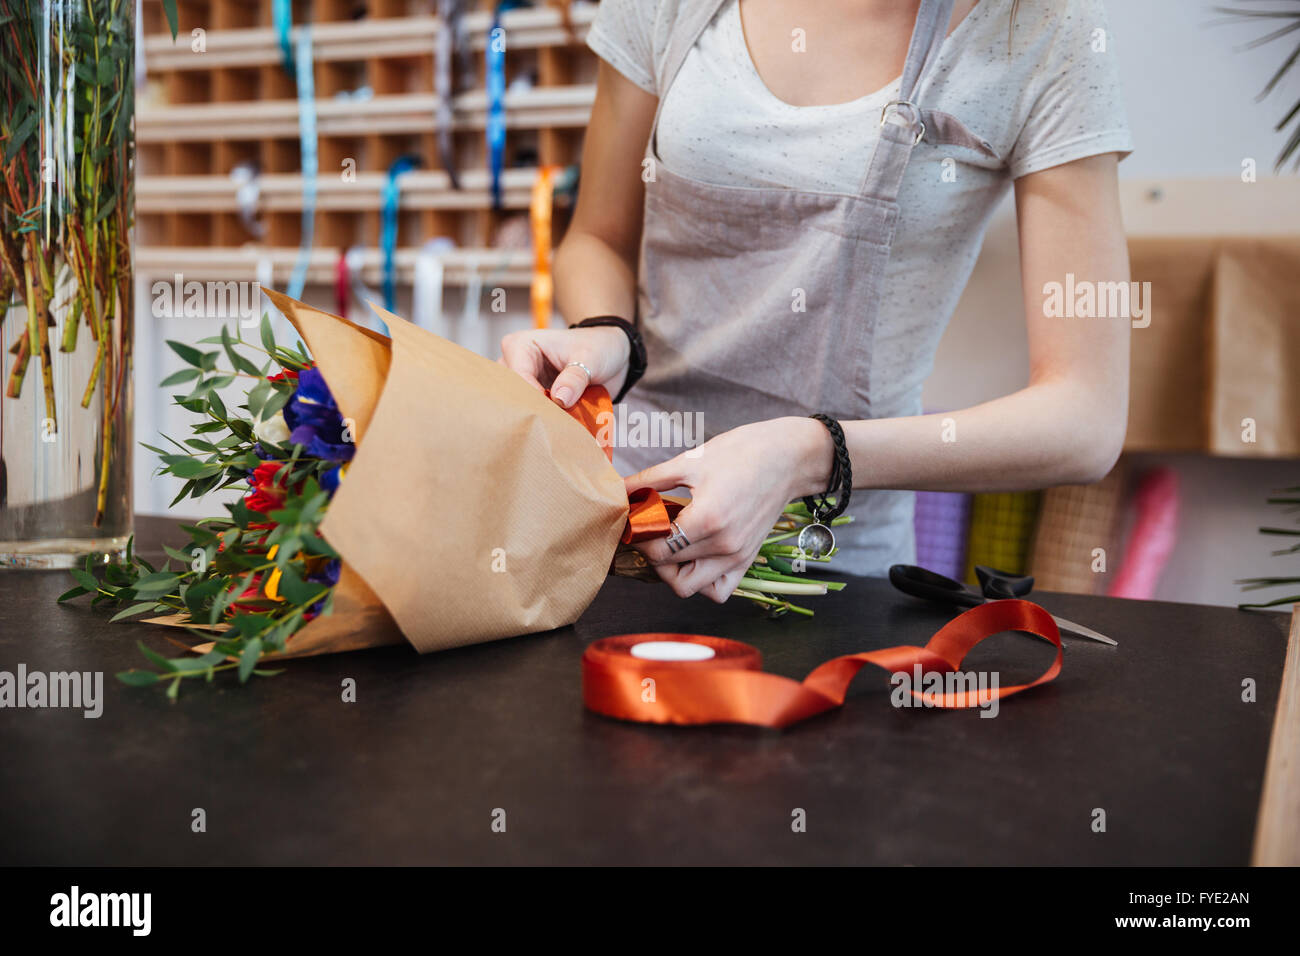 Hands of young woman florist standing and making bouquet of flowers in shop - Stock Image